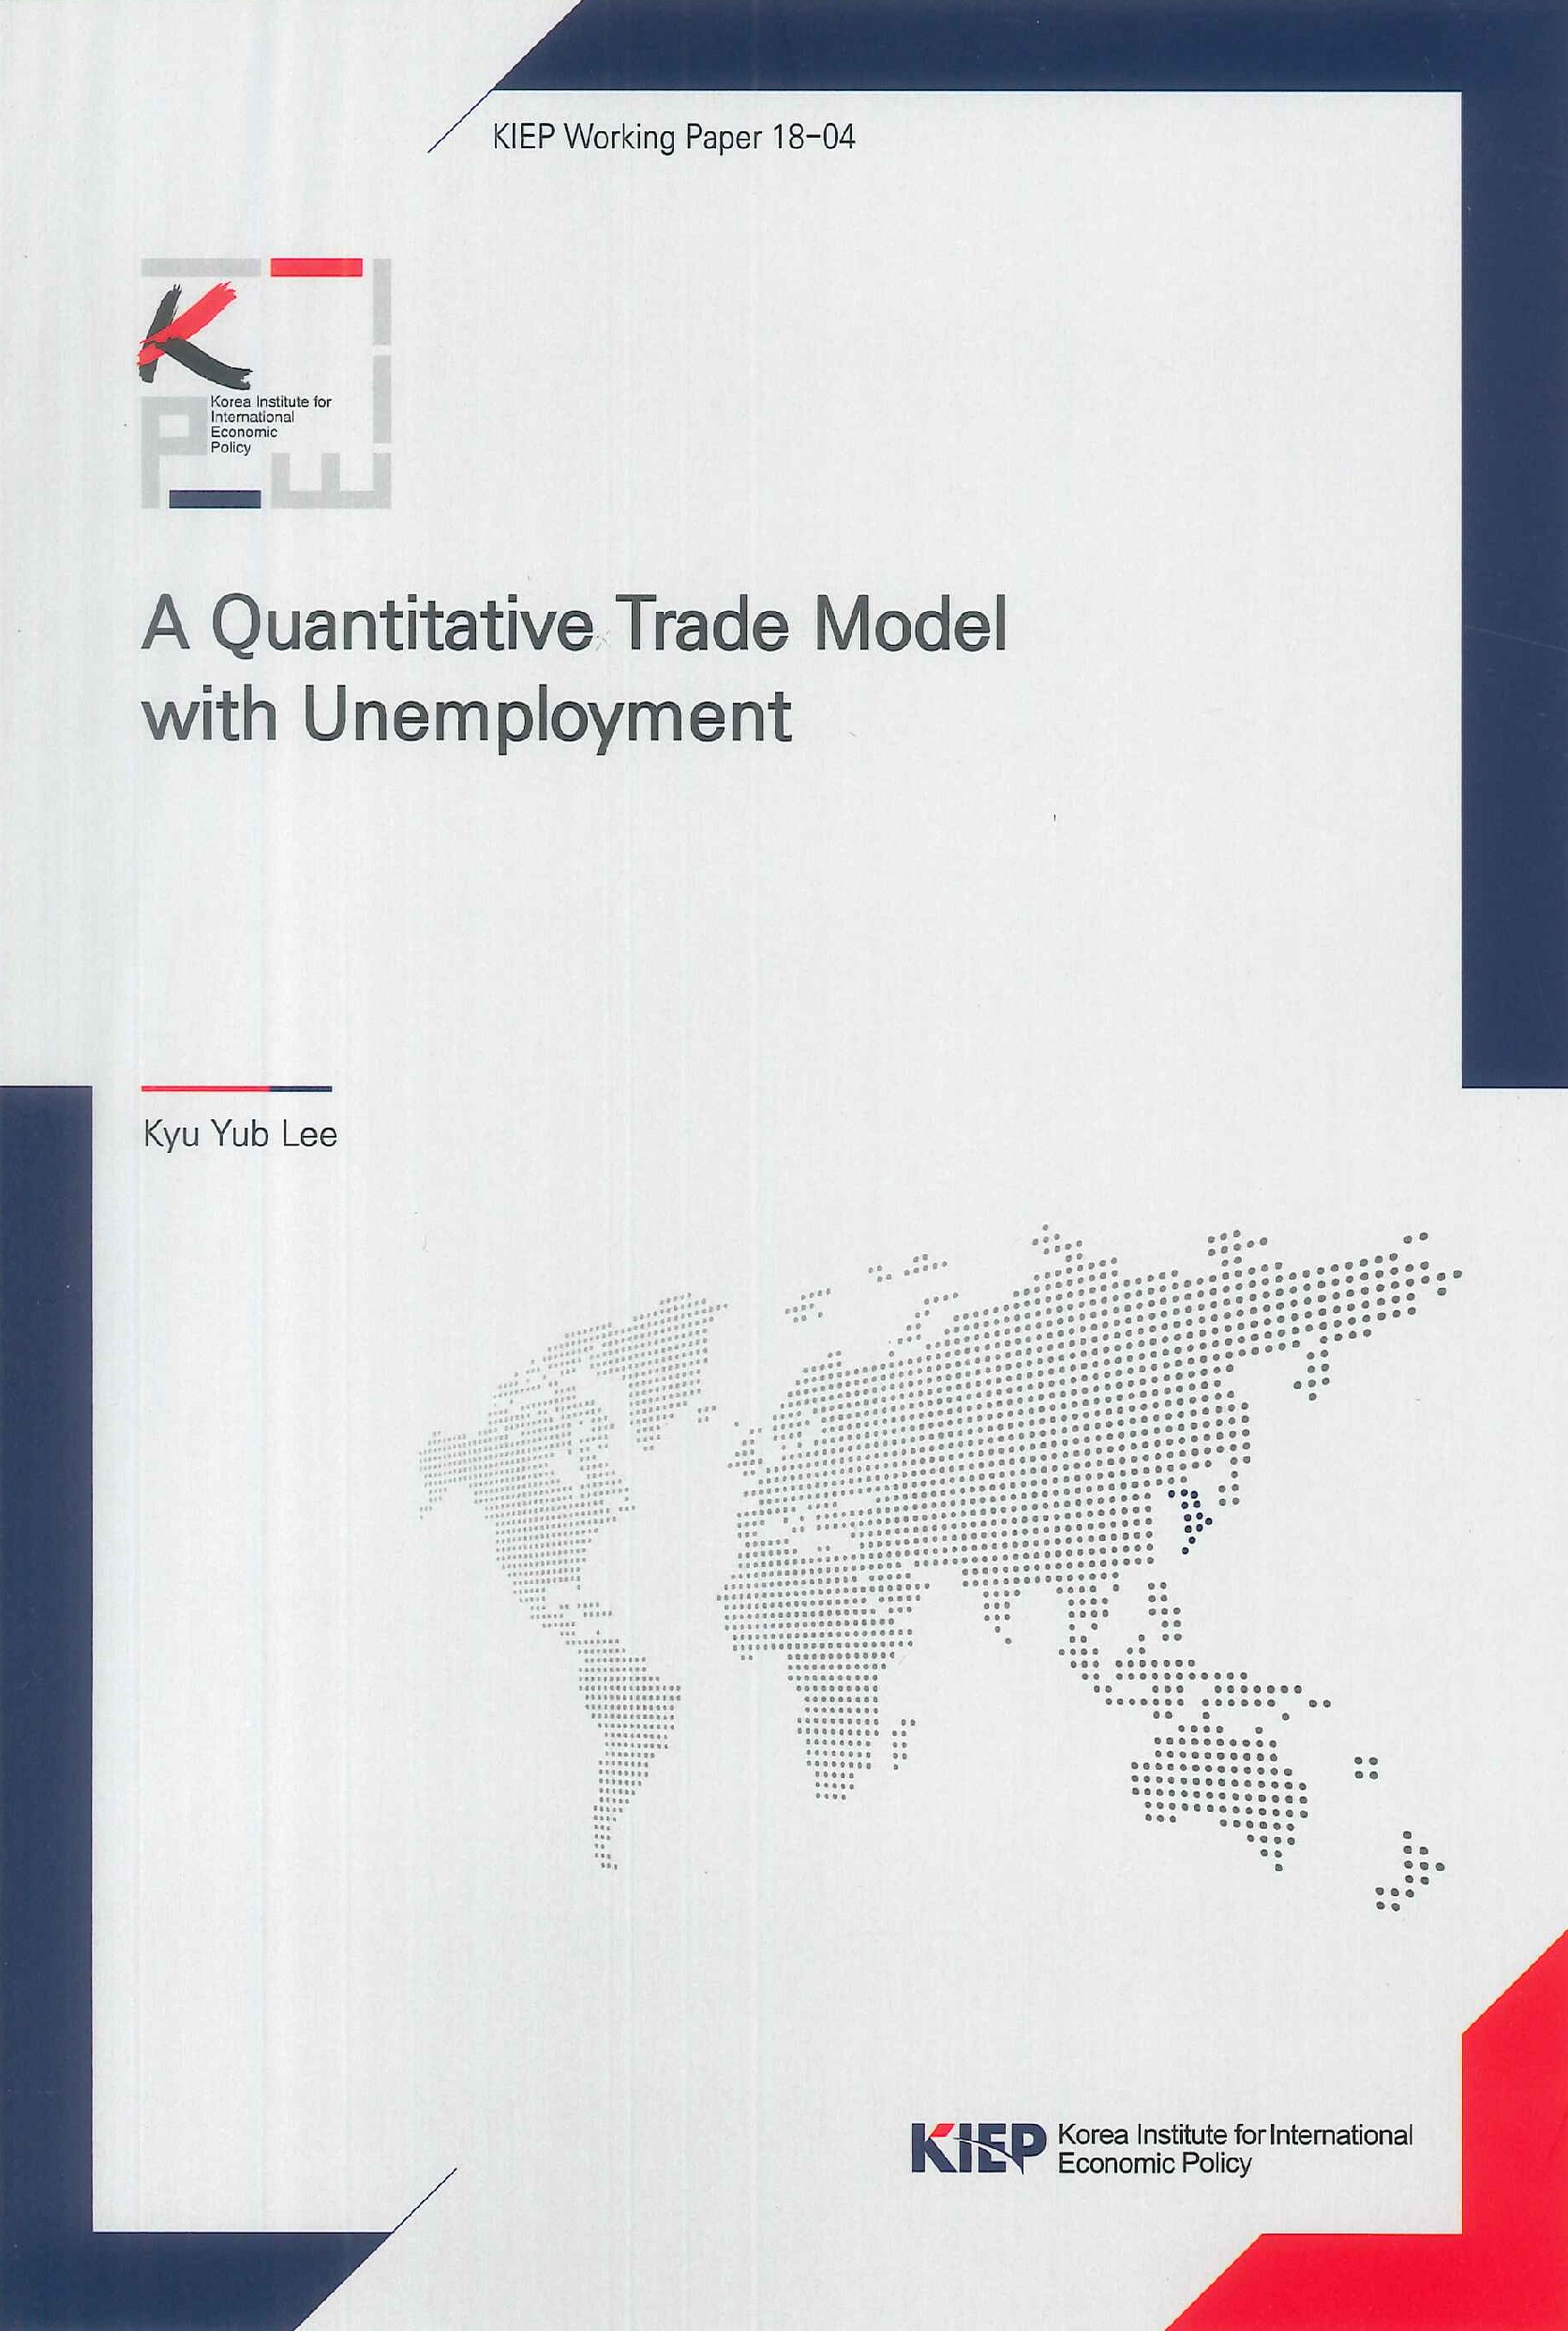 A quantitative trade model with unemployment